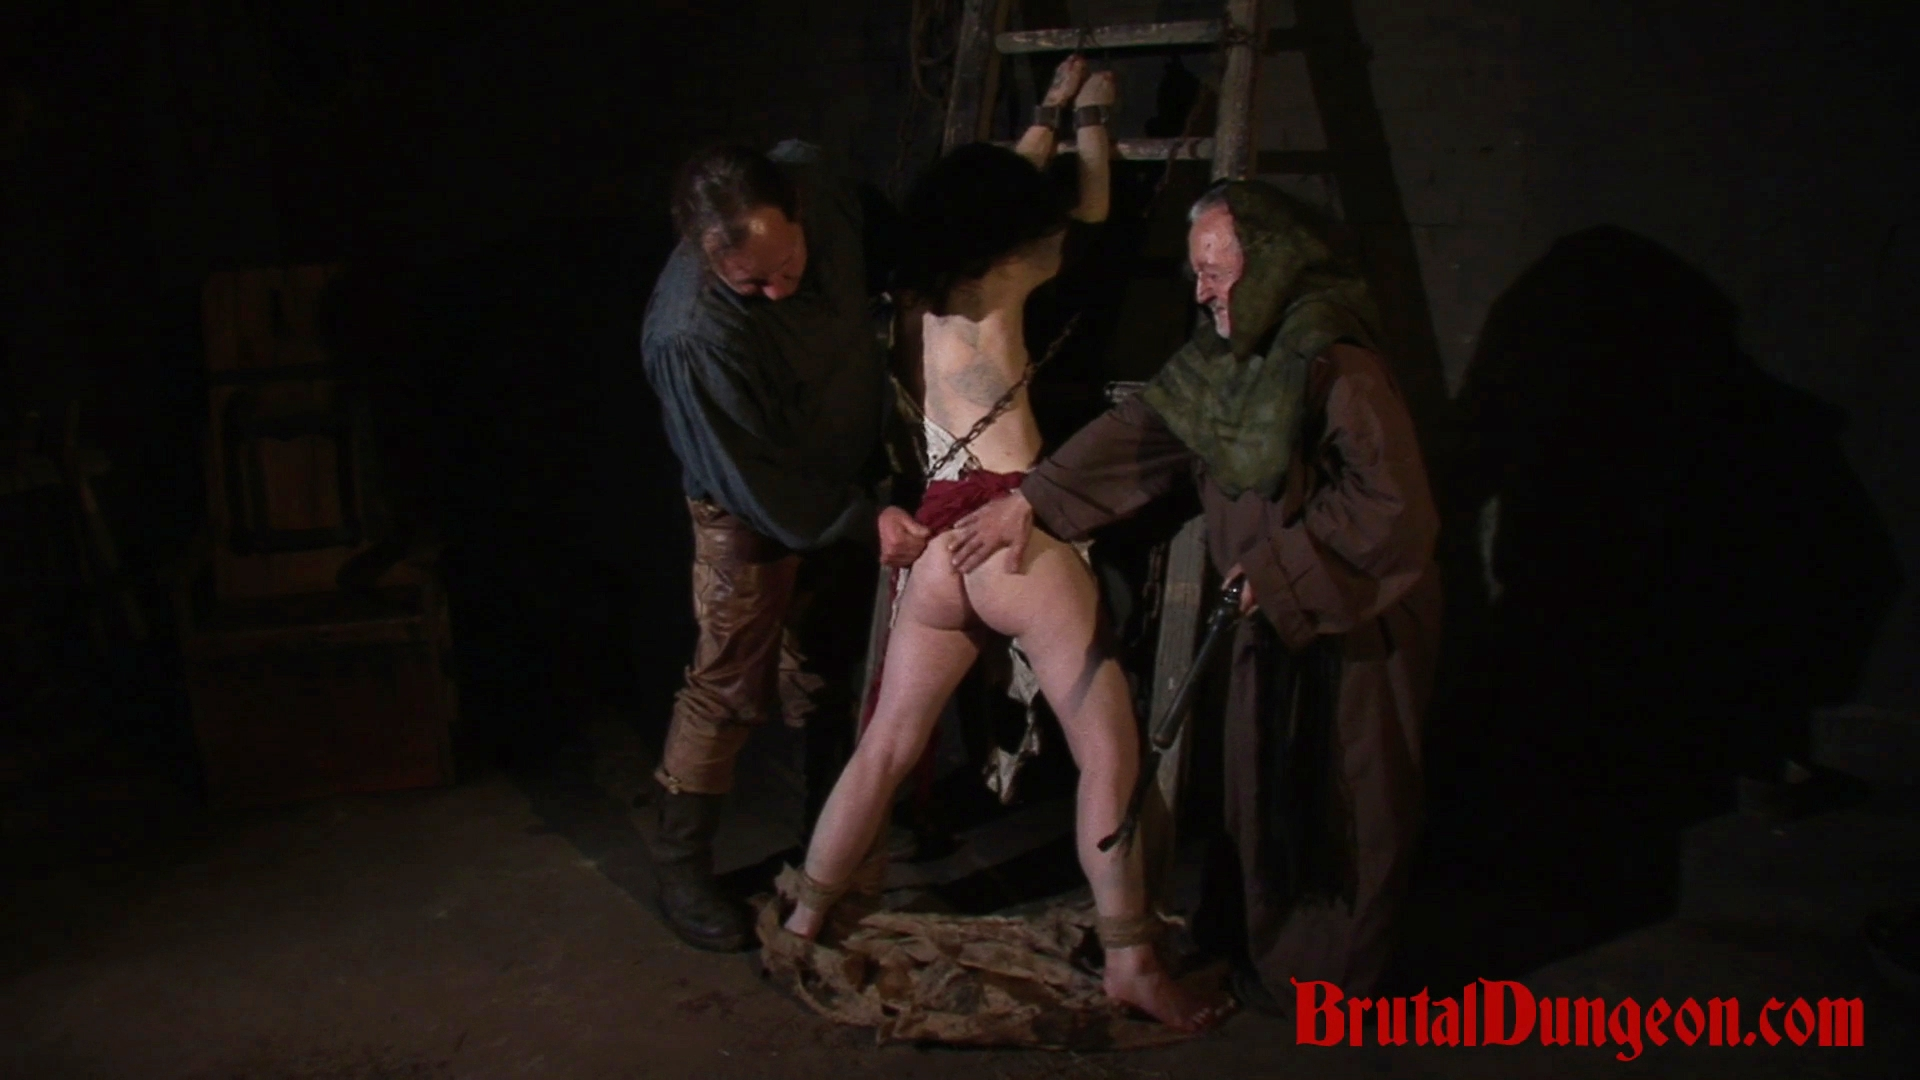 Brunette loredana is down in a dungeon where she only experiences bdsm gangbangs  brunette gypsy loredana has been arrested for suspicious activity in her apartment and punished in our dungeon every week  she will do anything to earn a pardon even endure . Brunette gypsy Loredana has been arrested for suspicious activity in her apartment and punished in our dungeon every week. She will do anything to earn a pardon, even endure imprisonment, bondage with leather cuffs and chains, domination, BDSM fun, gang bang, flogging, anus spanking, slapping, fingering, breast, nipple and pussy torment.